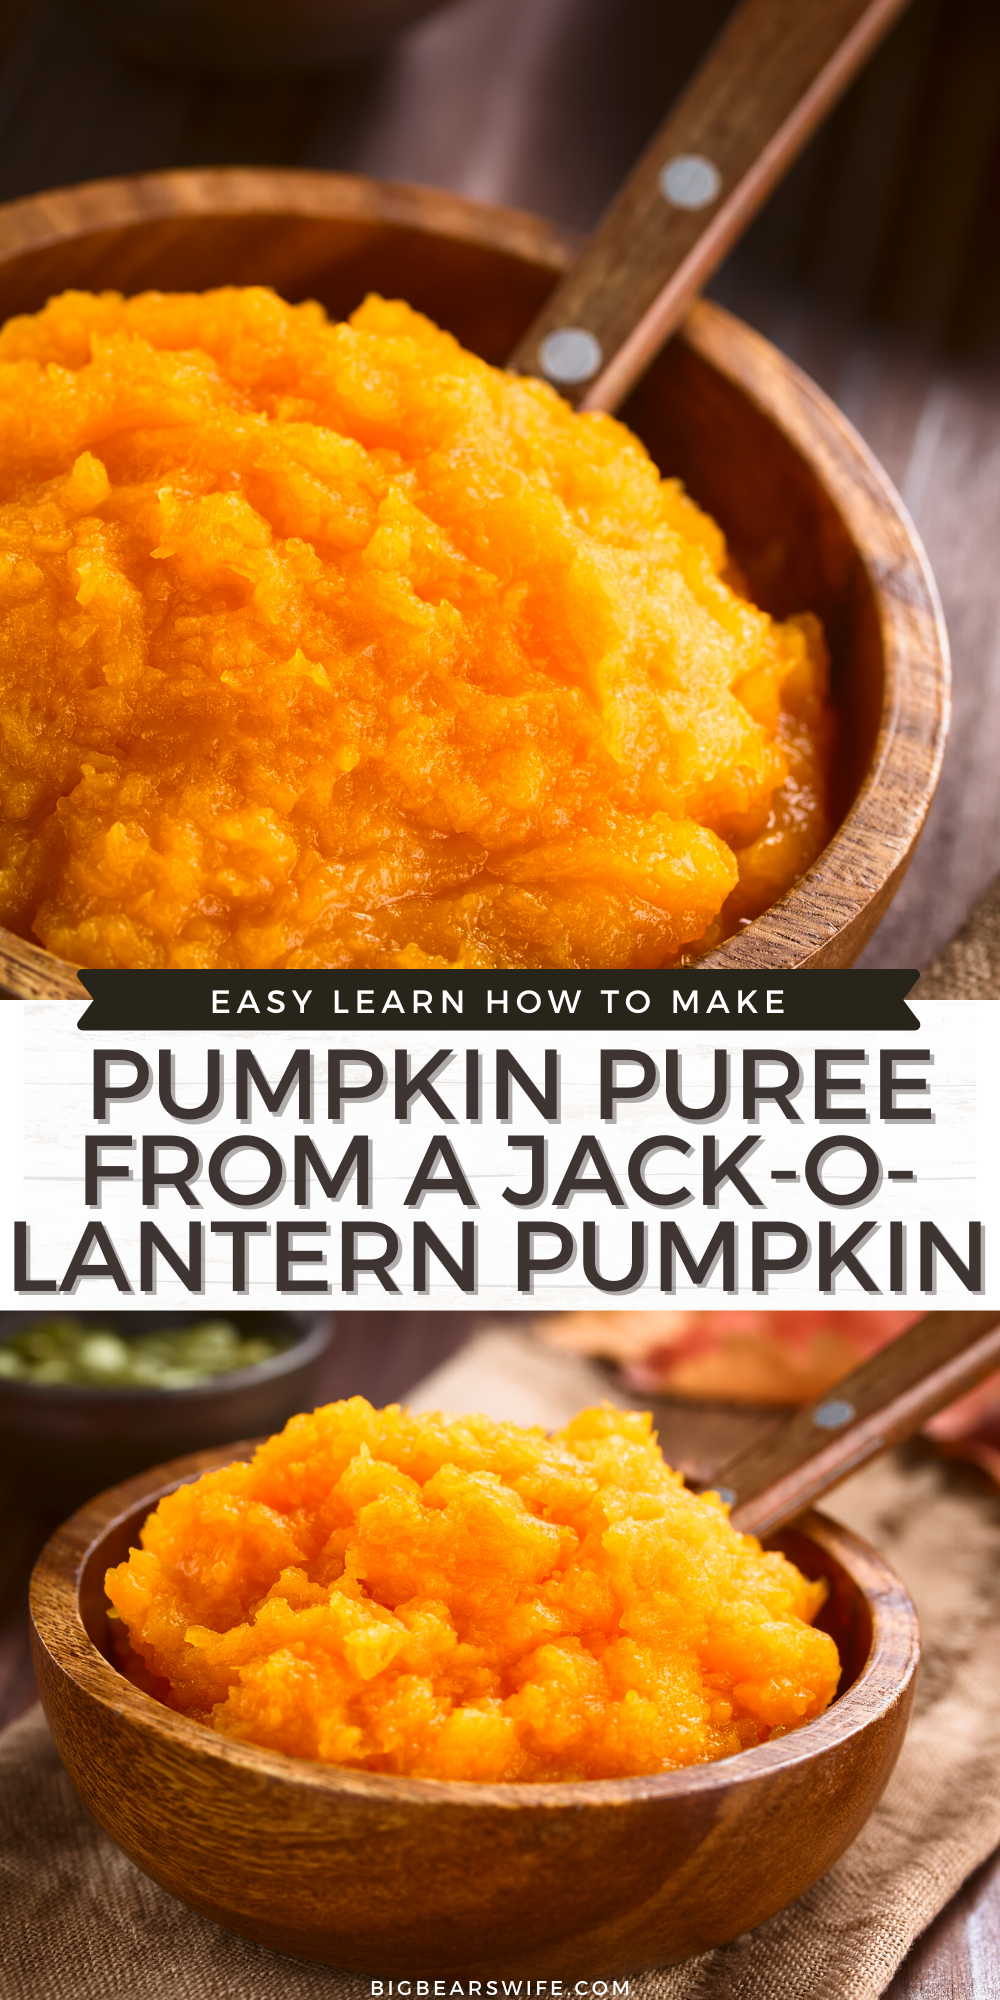 Want to make some homemade Pumpkin Desserts? Turn those un-carved pumpkins into homemade pumpkin puree! Perfect for Pumpkin Pies, Pumpkin Bread, Pumpkin Cookies and more!  This post will teach you how to make Homemade Pumpkin Puree from Jack-O-Lantern style pumpkins.